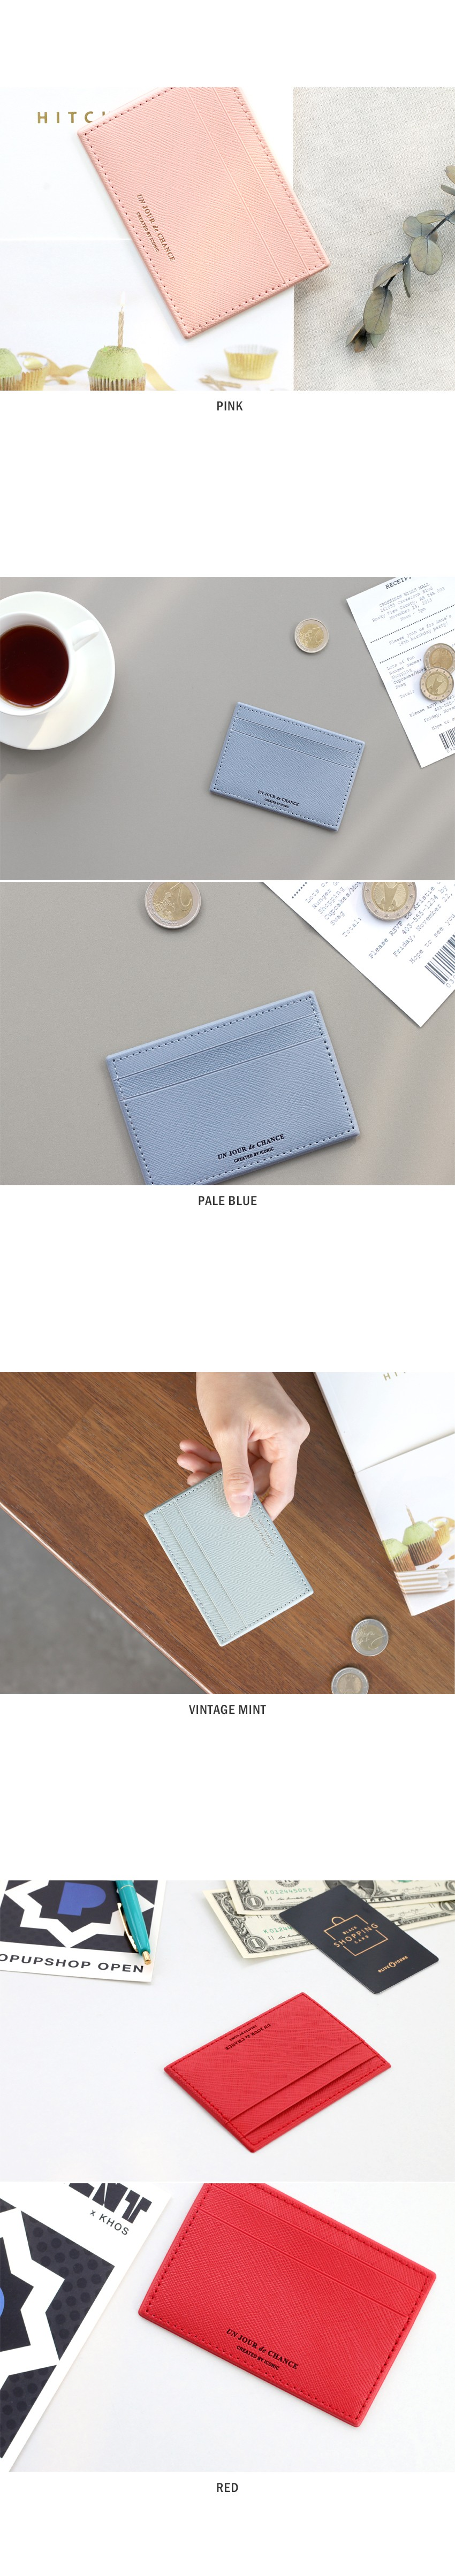 flat-card-pocket-v.2-d2.jpg